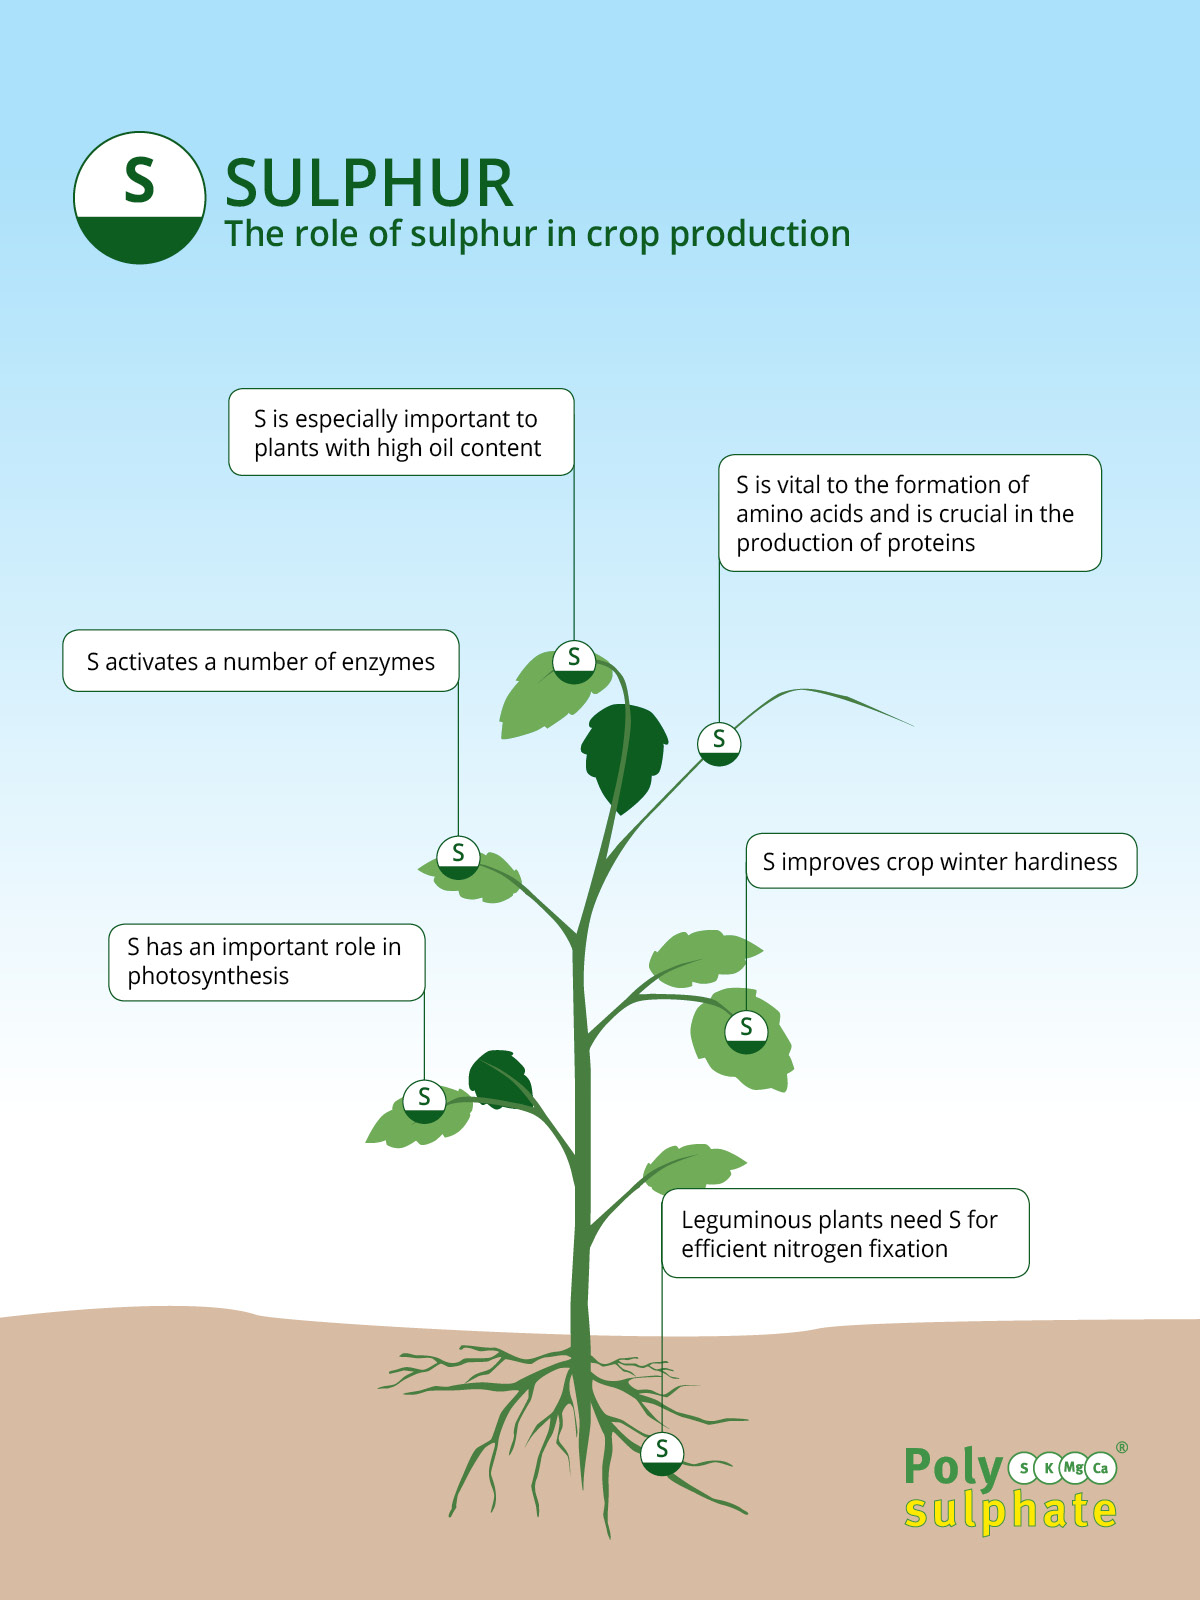 The role of sulphur in crops